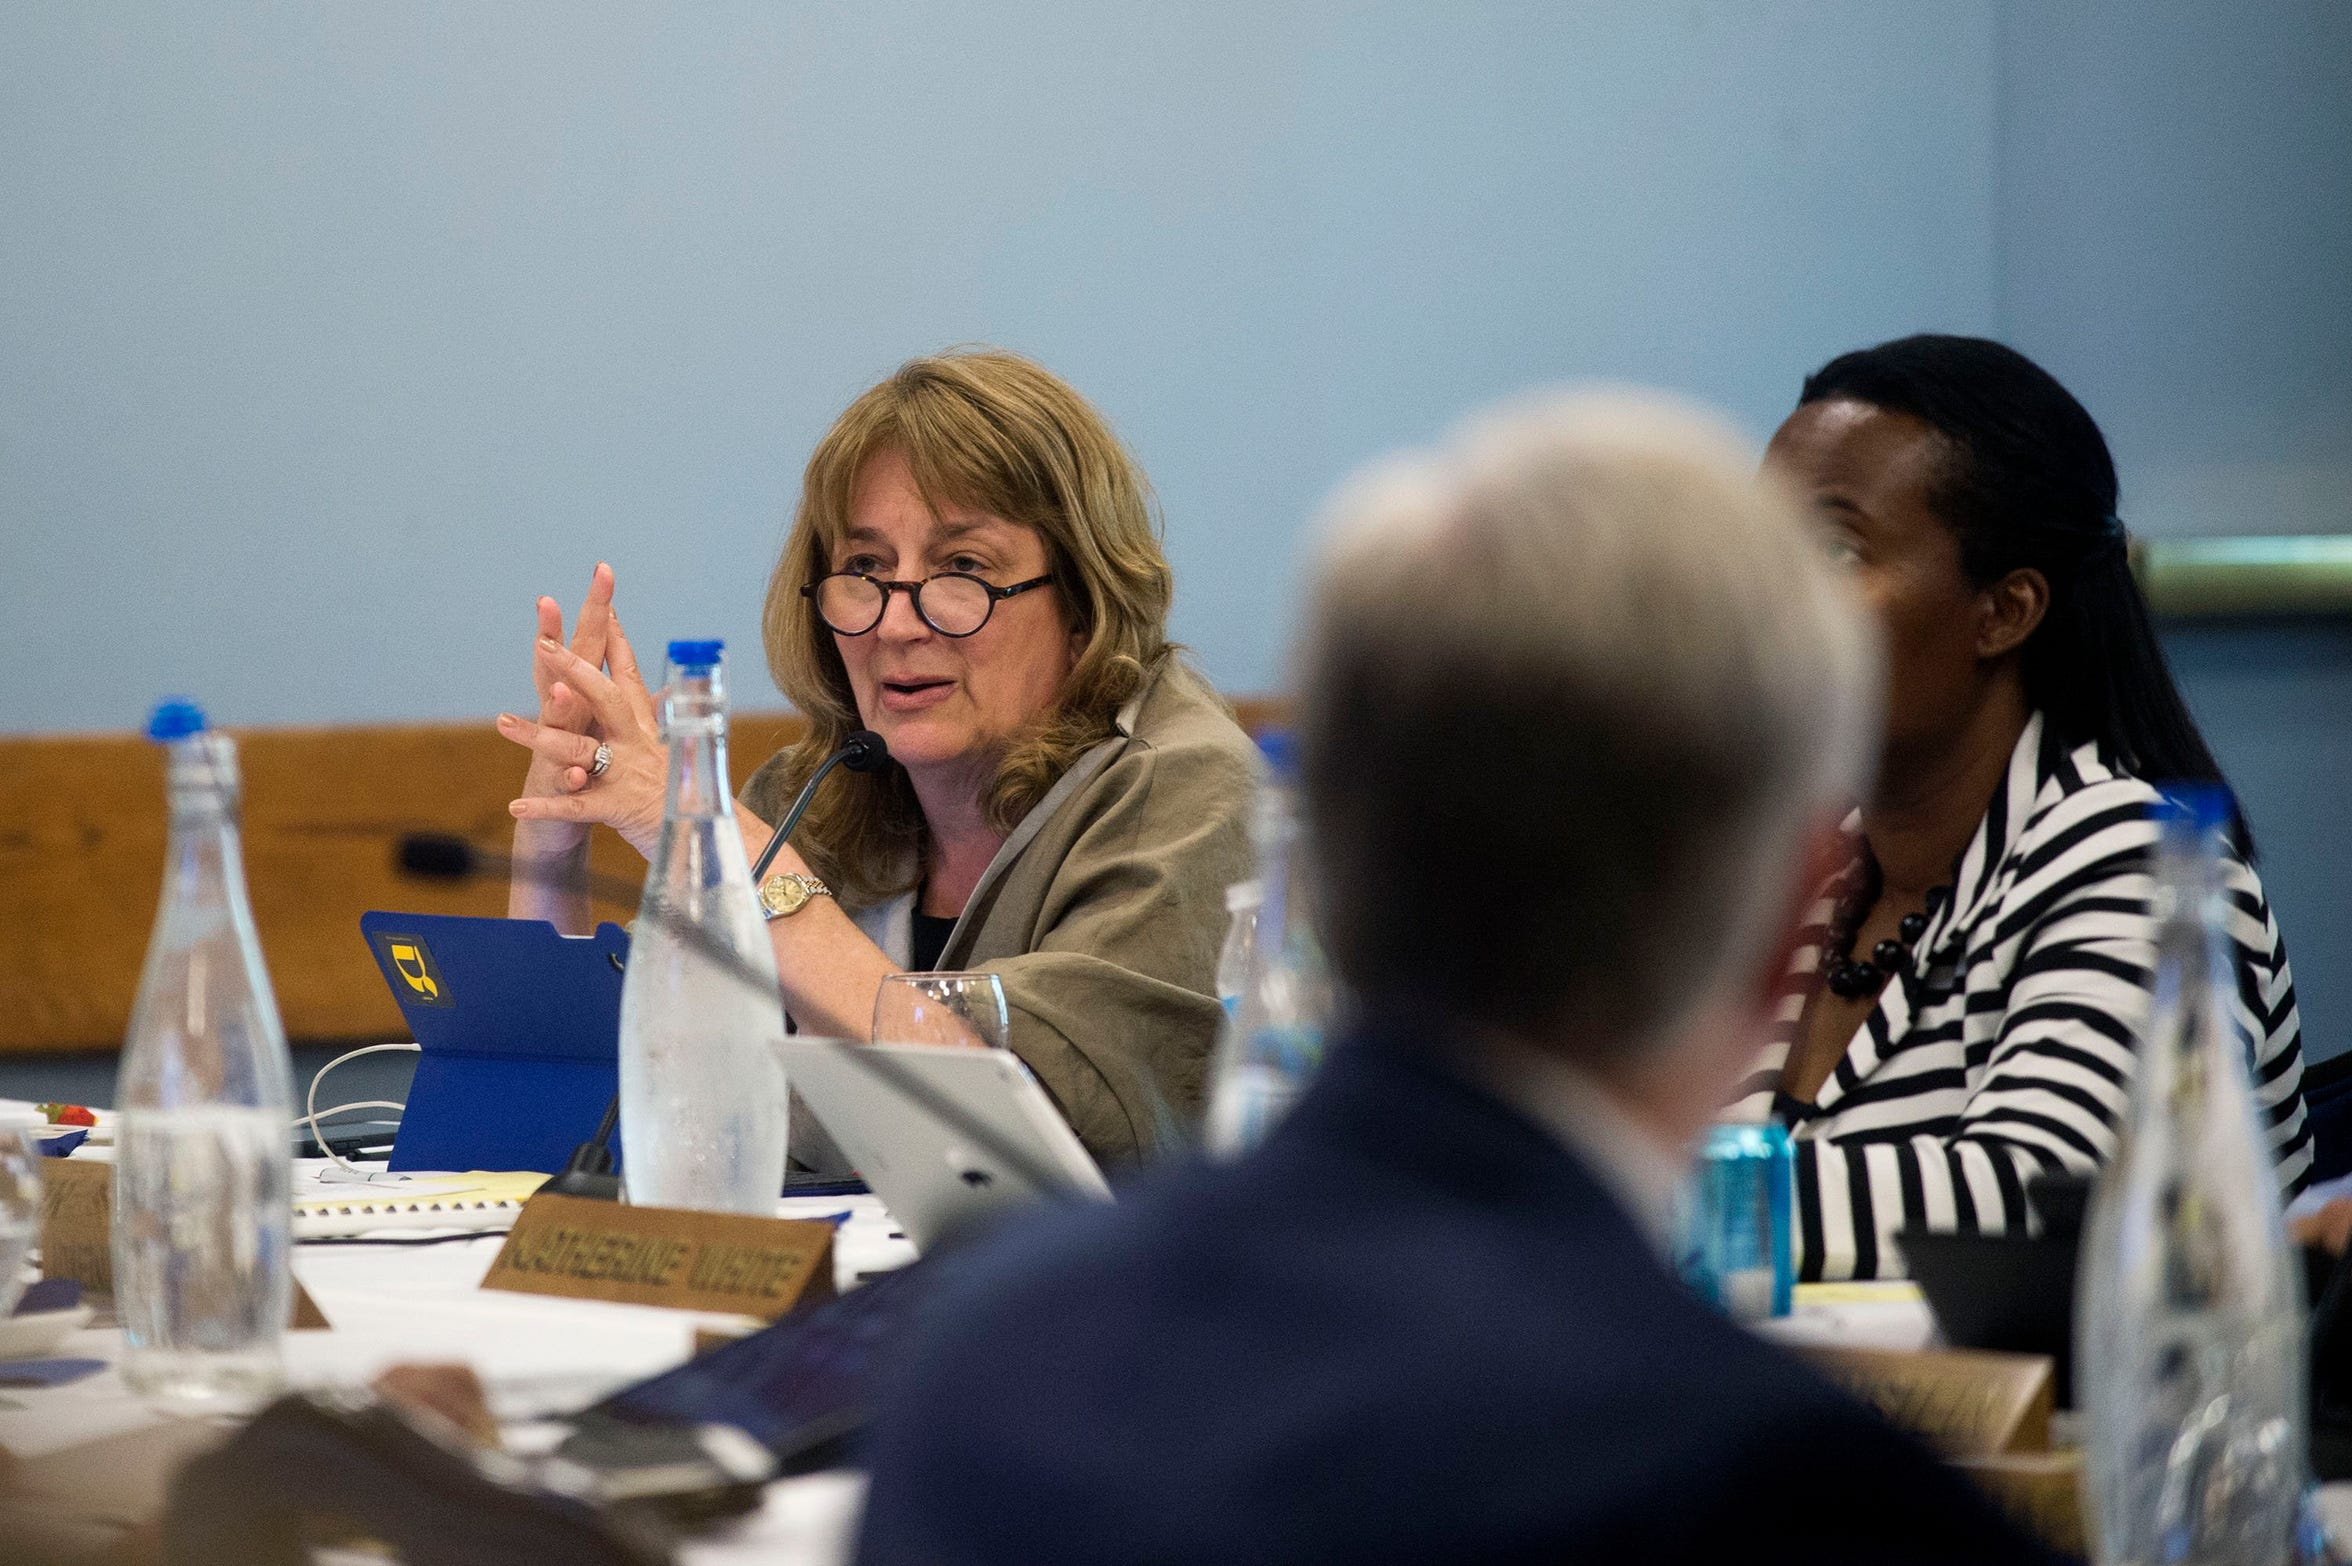 University of Michigan Regent Andrea Fischer Newman speaks during the Board of Regents meeting on Thursday, June 15, 2017 at the Michigan Union in Ann Arbor.